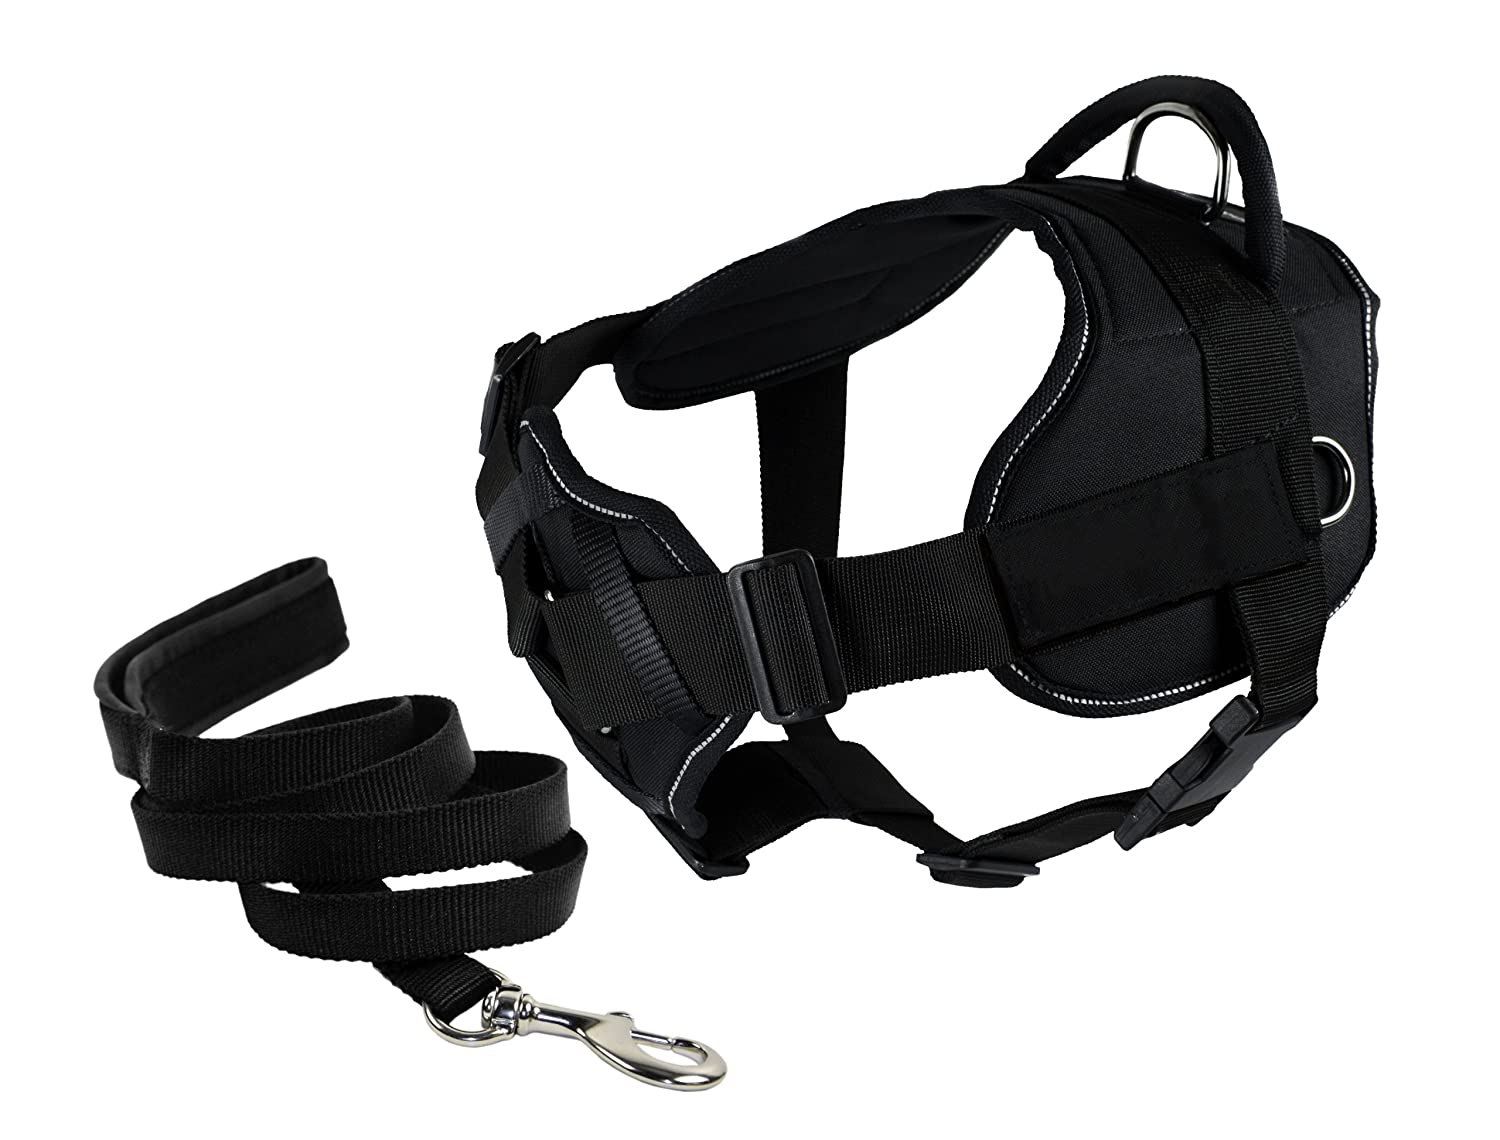 Dean & Tyler's DT Fun Chest Support Harness with Reflective Trim, Small, and 6 ft Padded Puppy Leash.